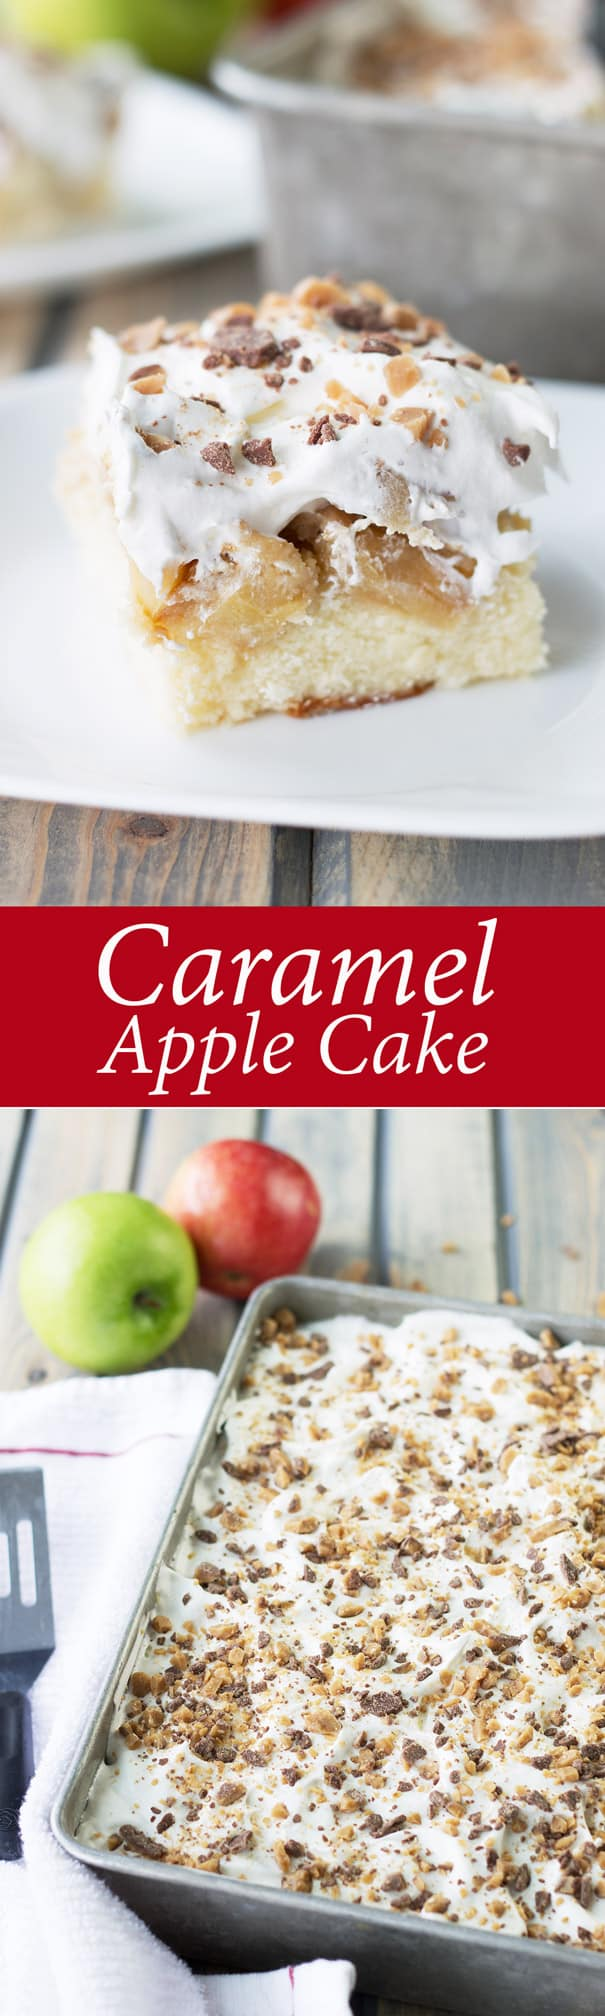 This Caramel Apple Cake is moist and full of caramel apples! | Countryside Cravings